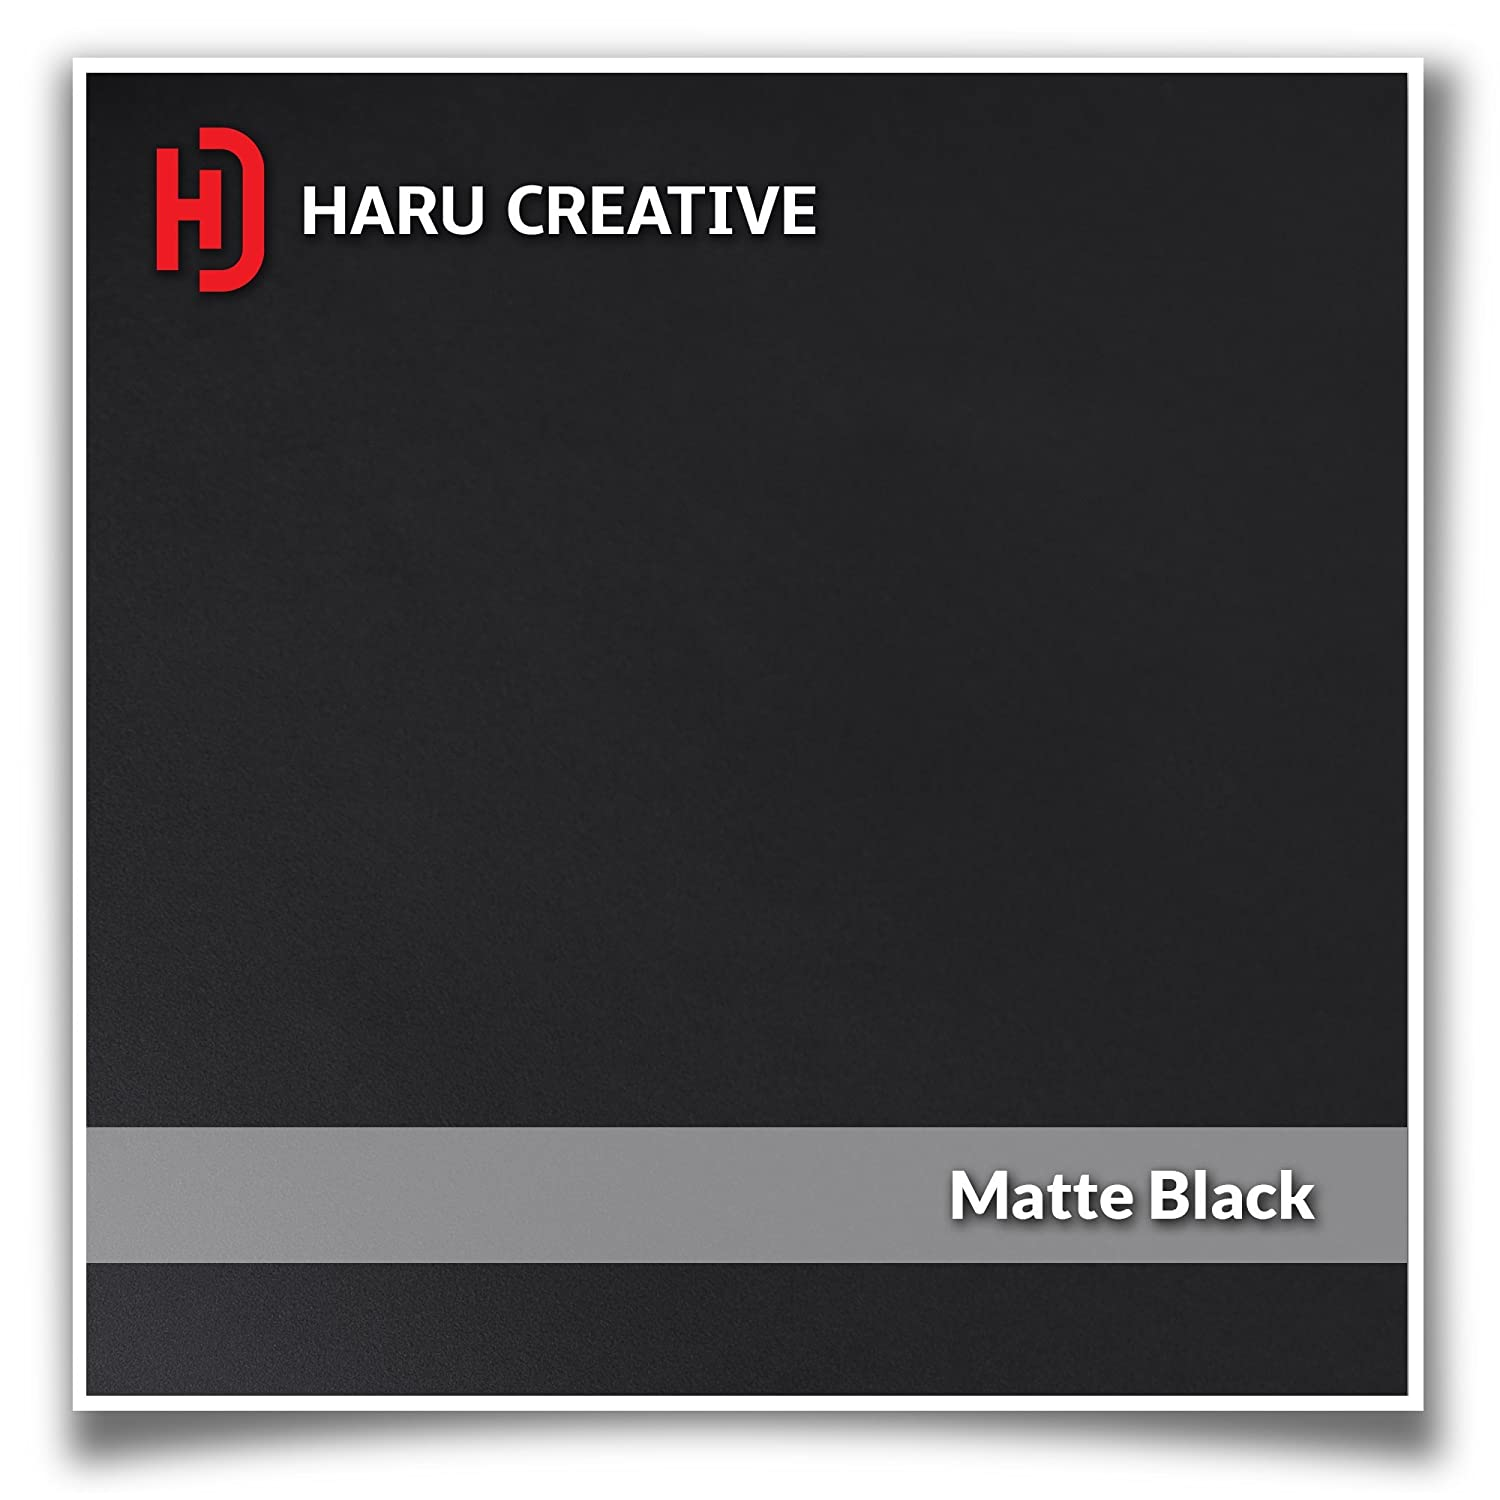 Matte Black Loyo Haru Creative Dashboard Glove Box Letter Insert Overlay Vinyl Decal Compatible with and Fits 2017 2018 Ford Super Duty F250 F350 F450